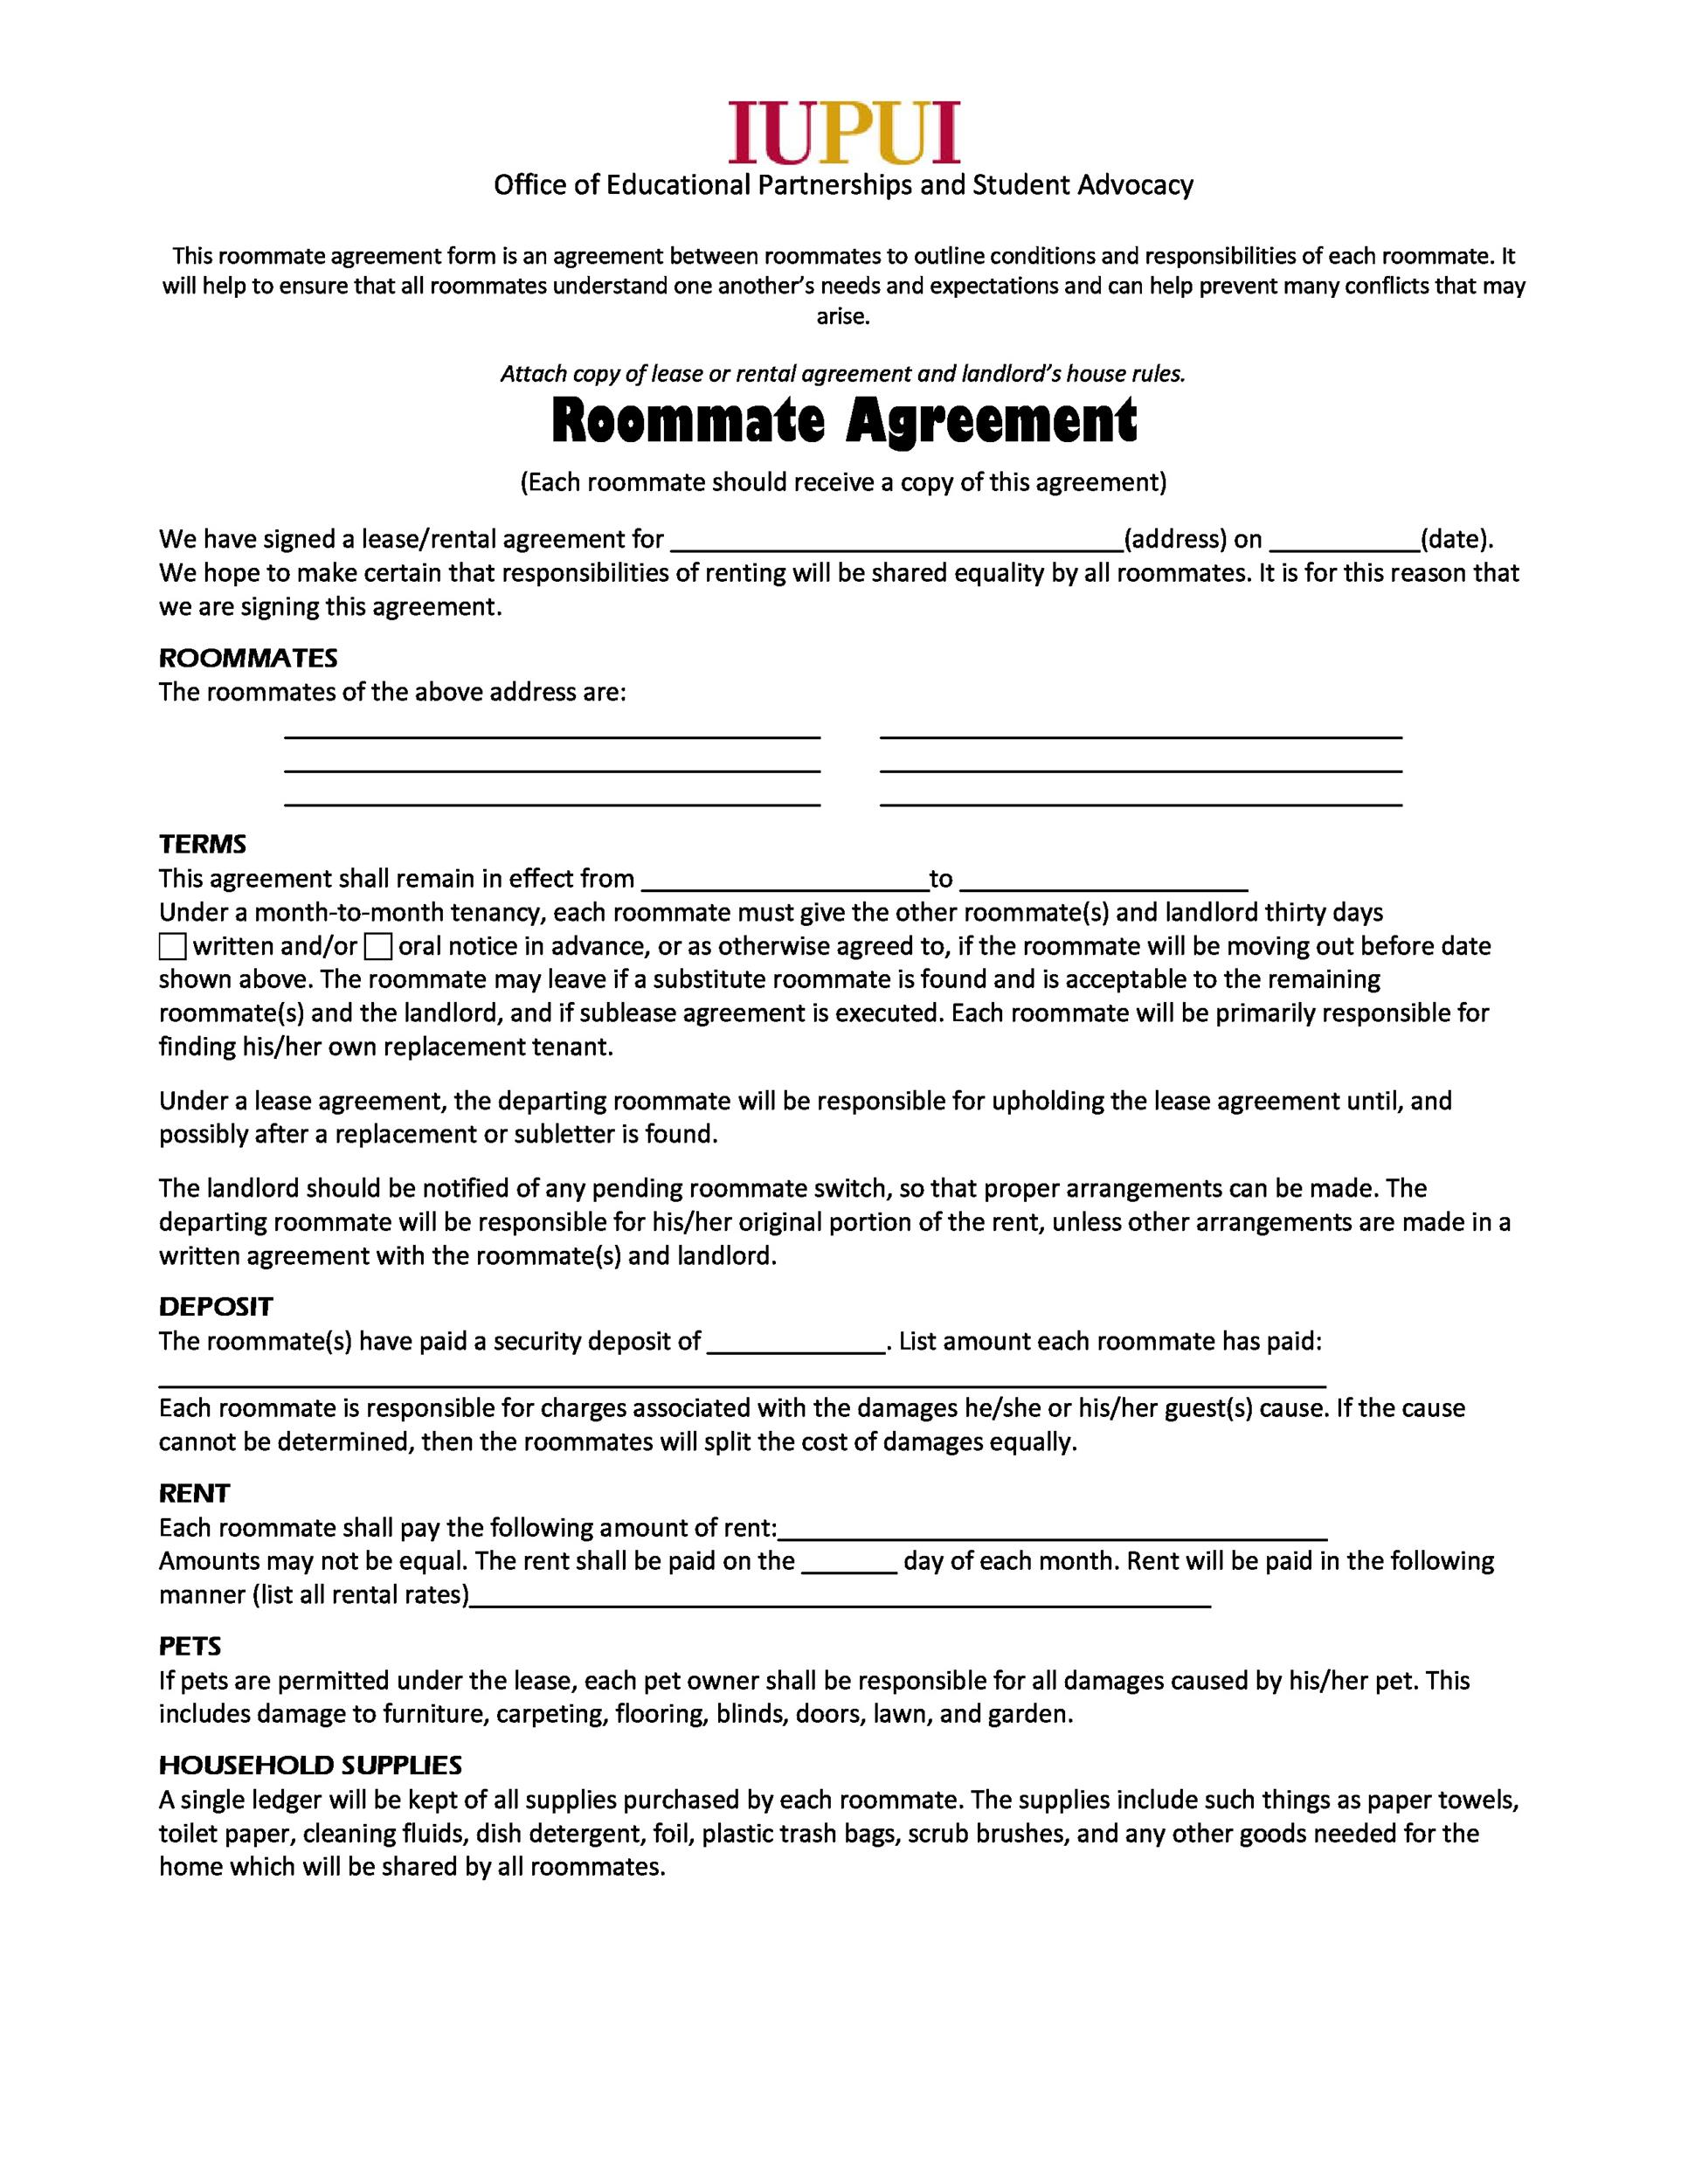 printable roommate agreement template 14